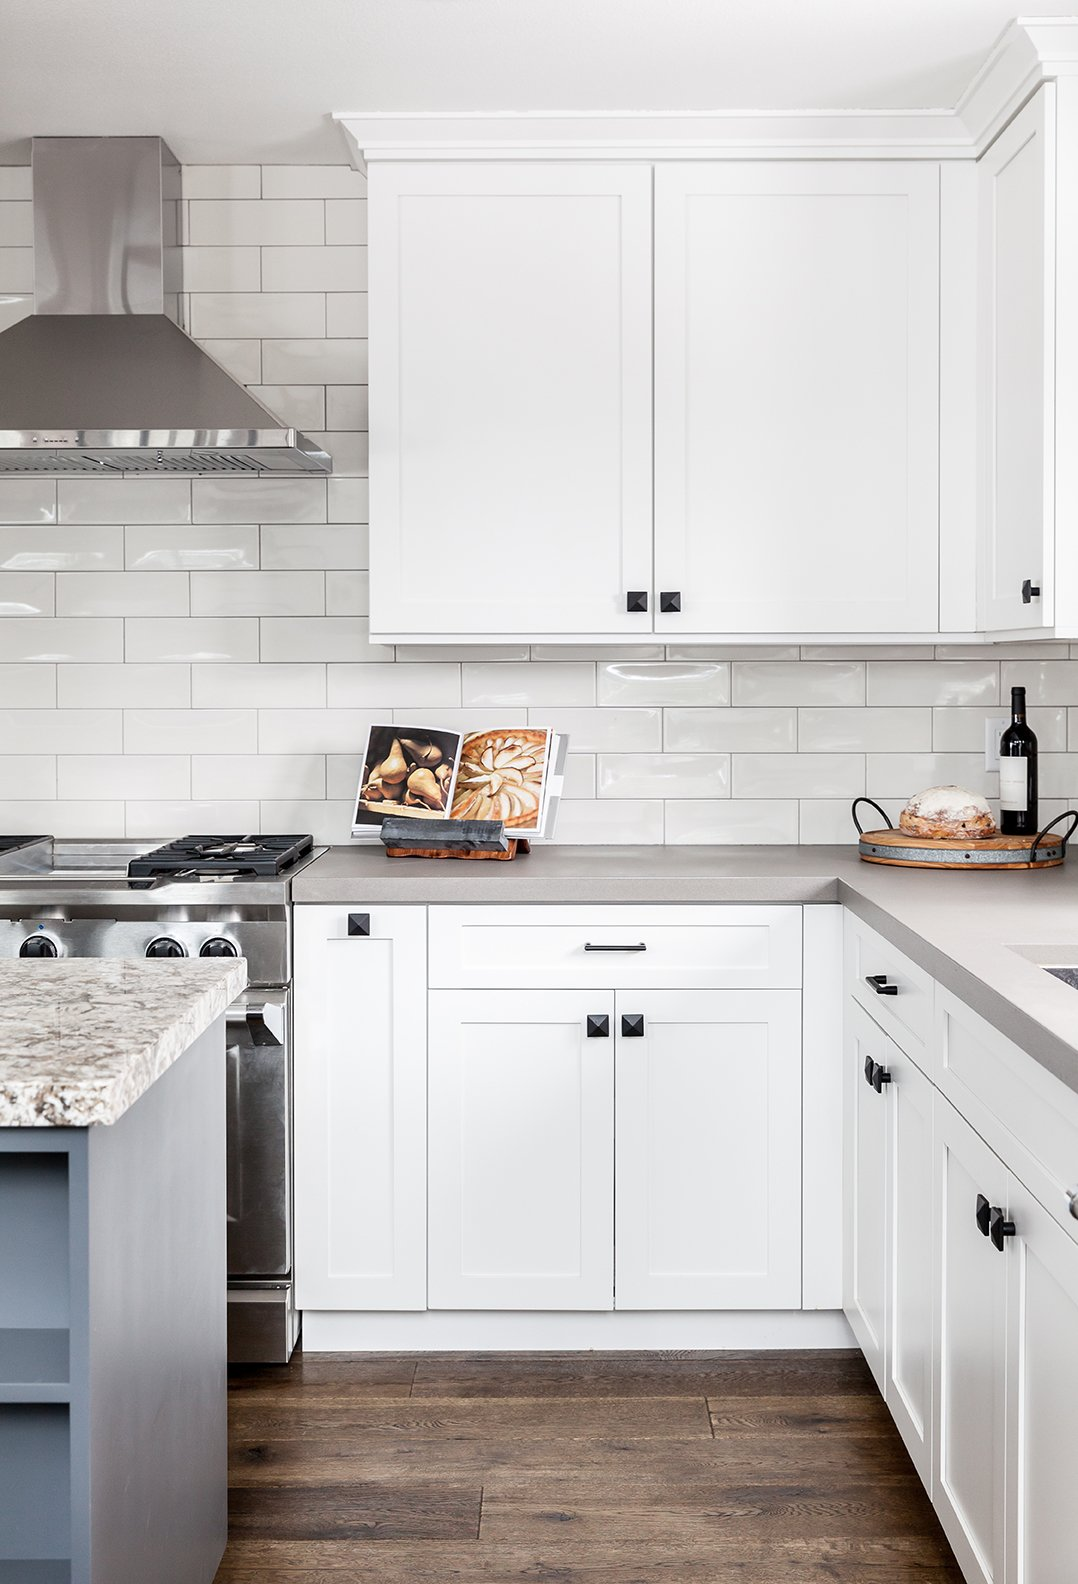 Kitchen, Range, Range Hood, and Subway Tile Backsplashe  Dwell Magazine : September / October 2017  Photo 4 of 6 in In This A-Frame Cabin Makeover, Simplicity Is Key